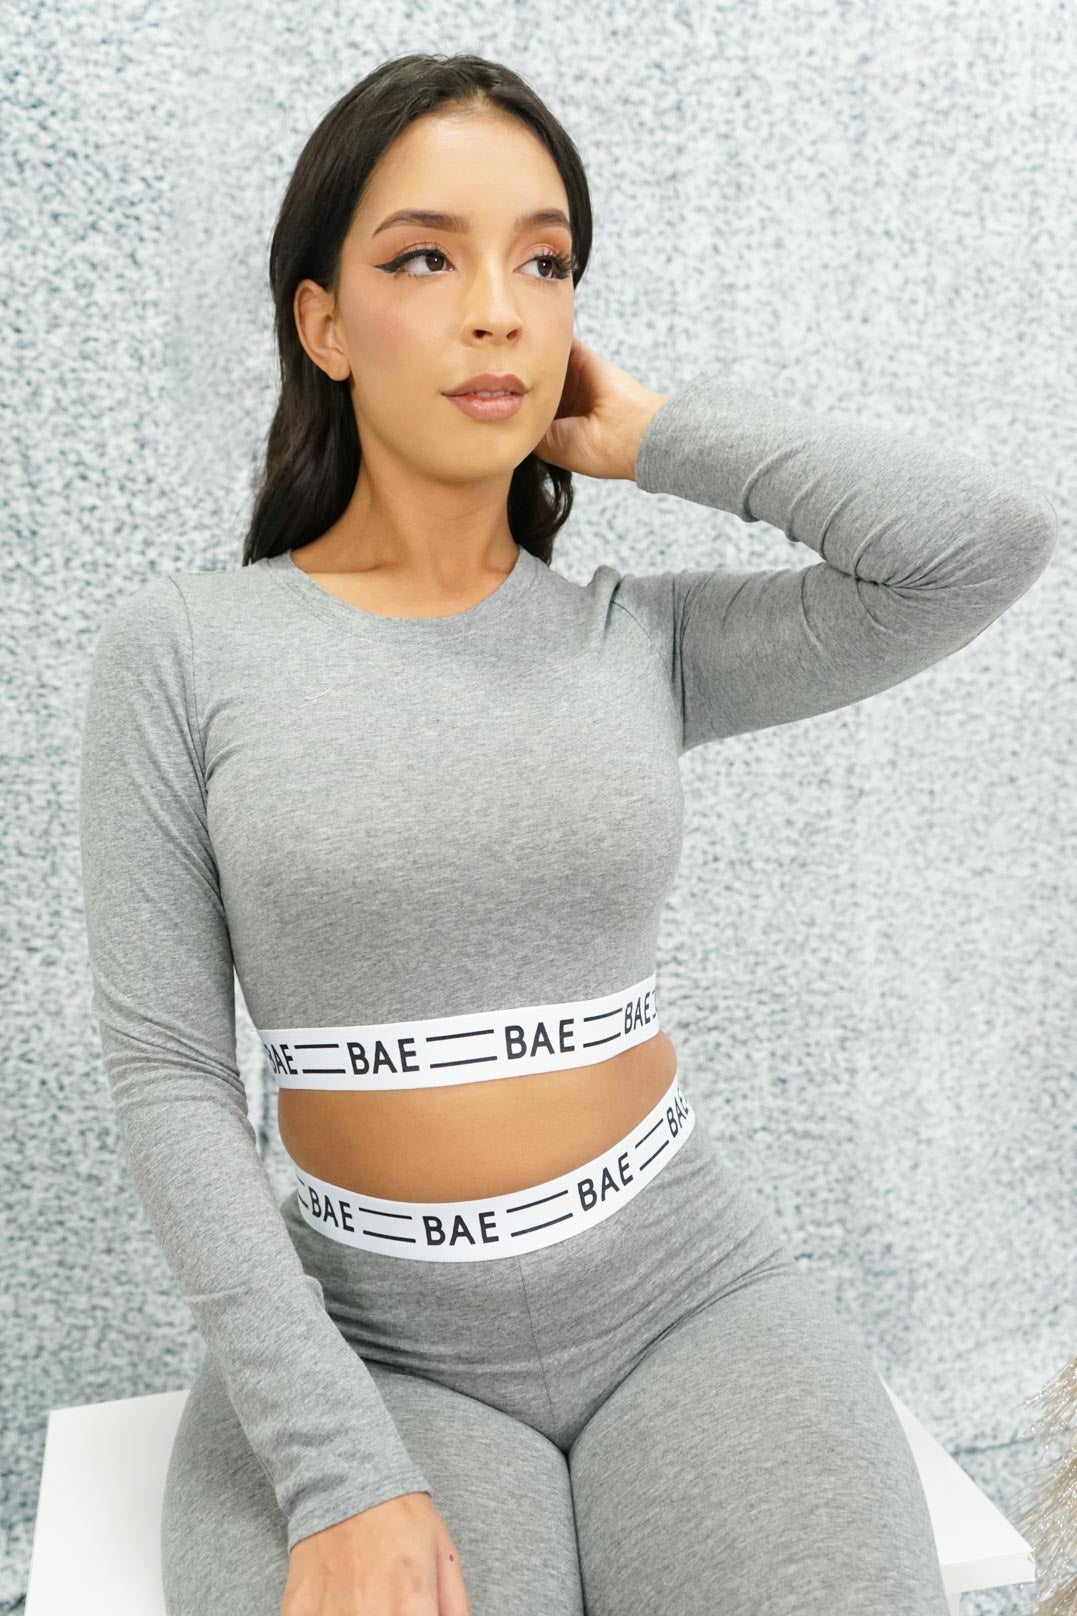 I'm Your Bae Long Sleeve Crop Top